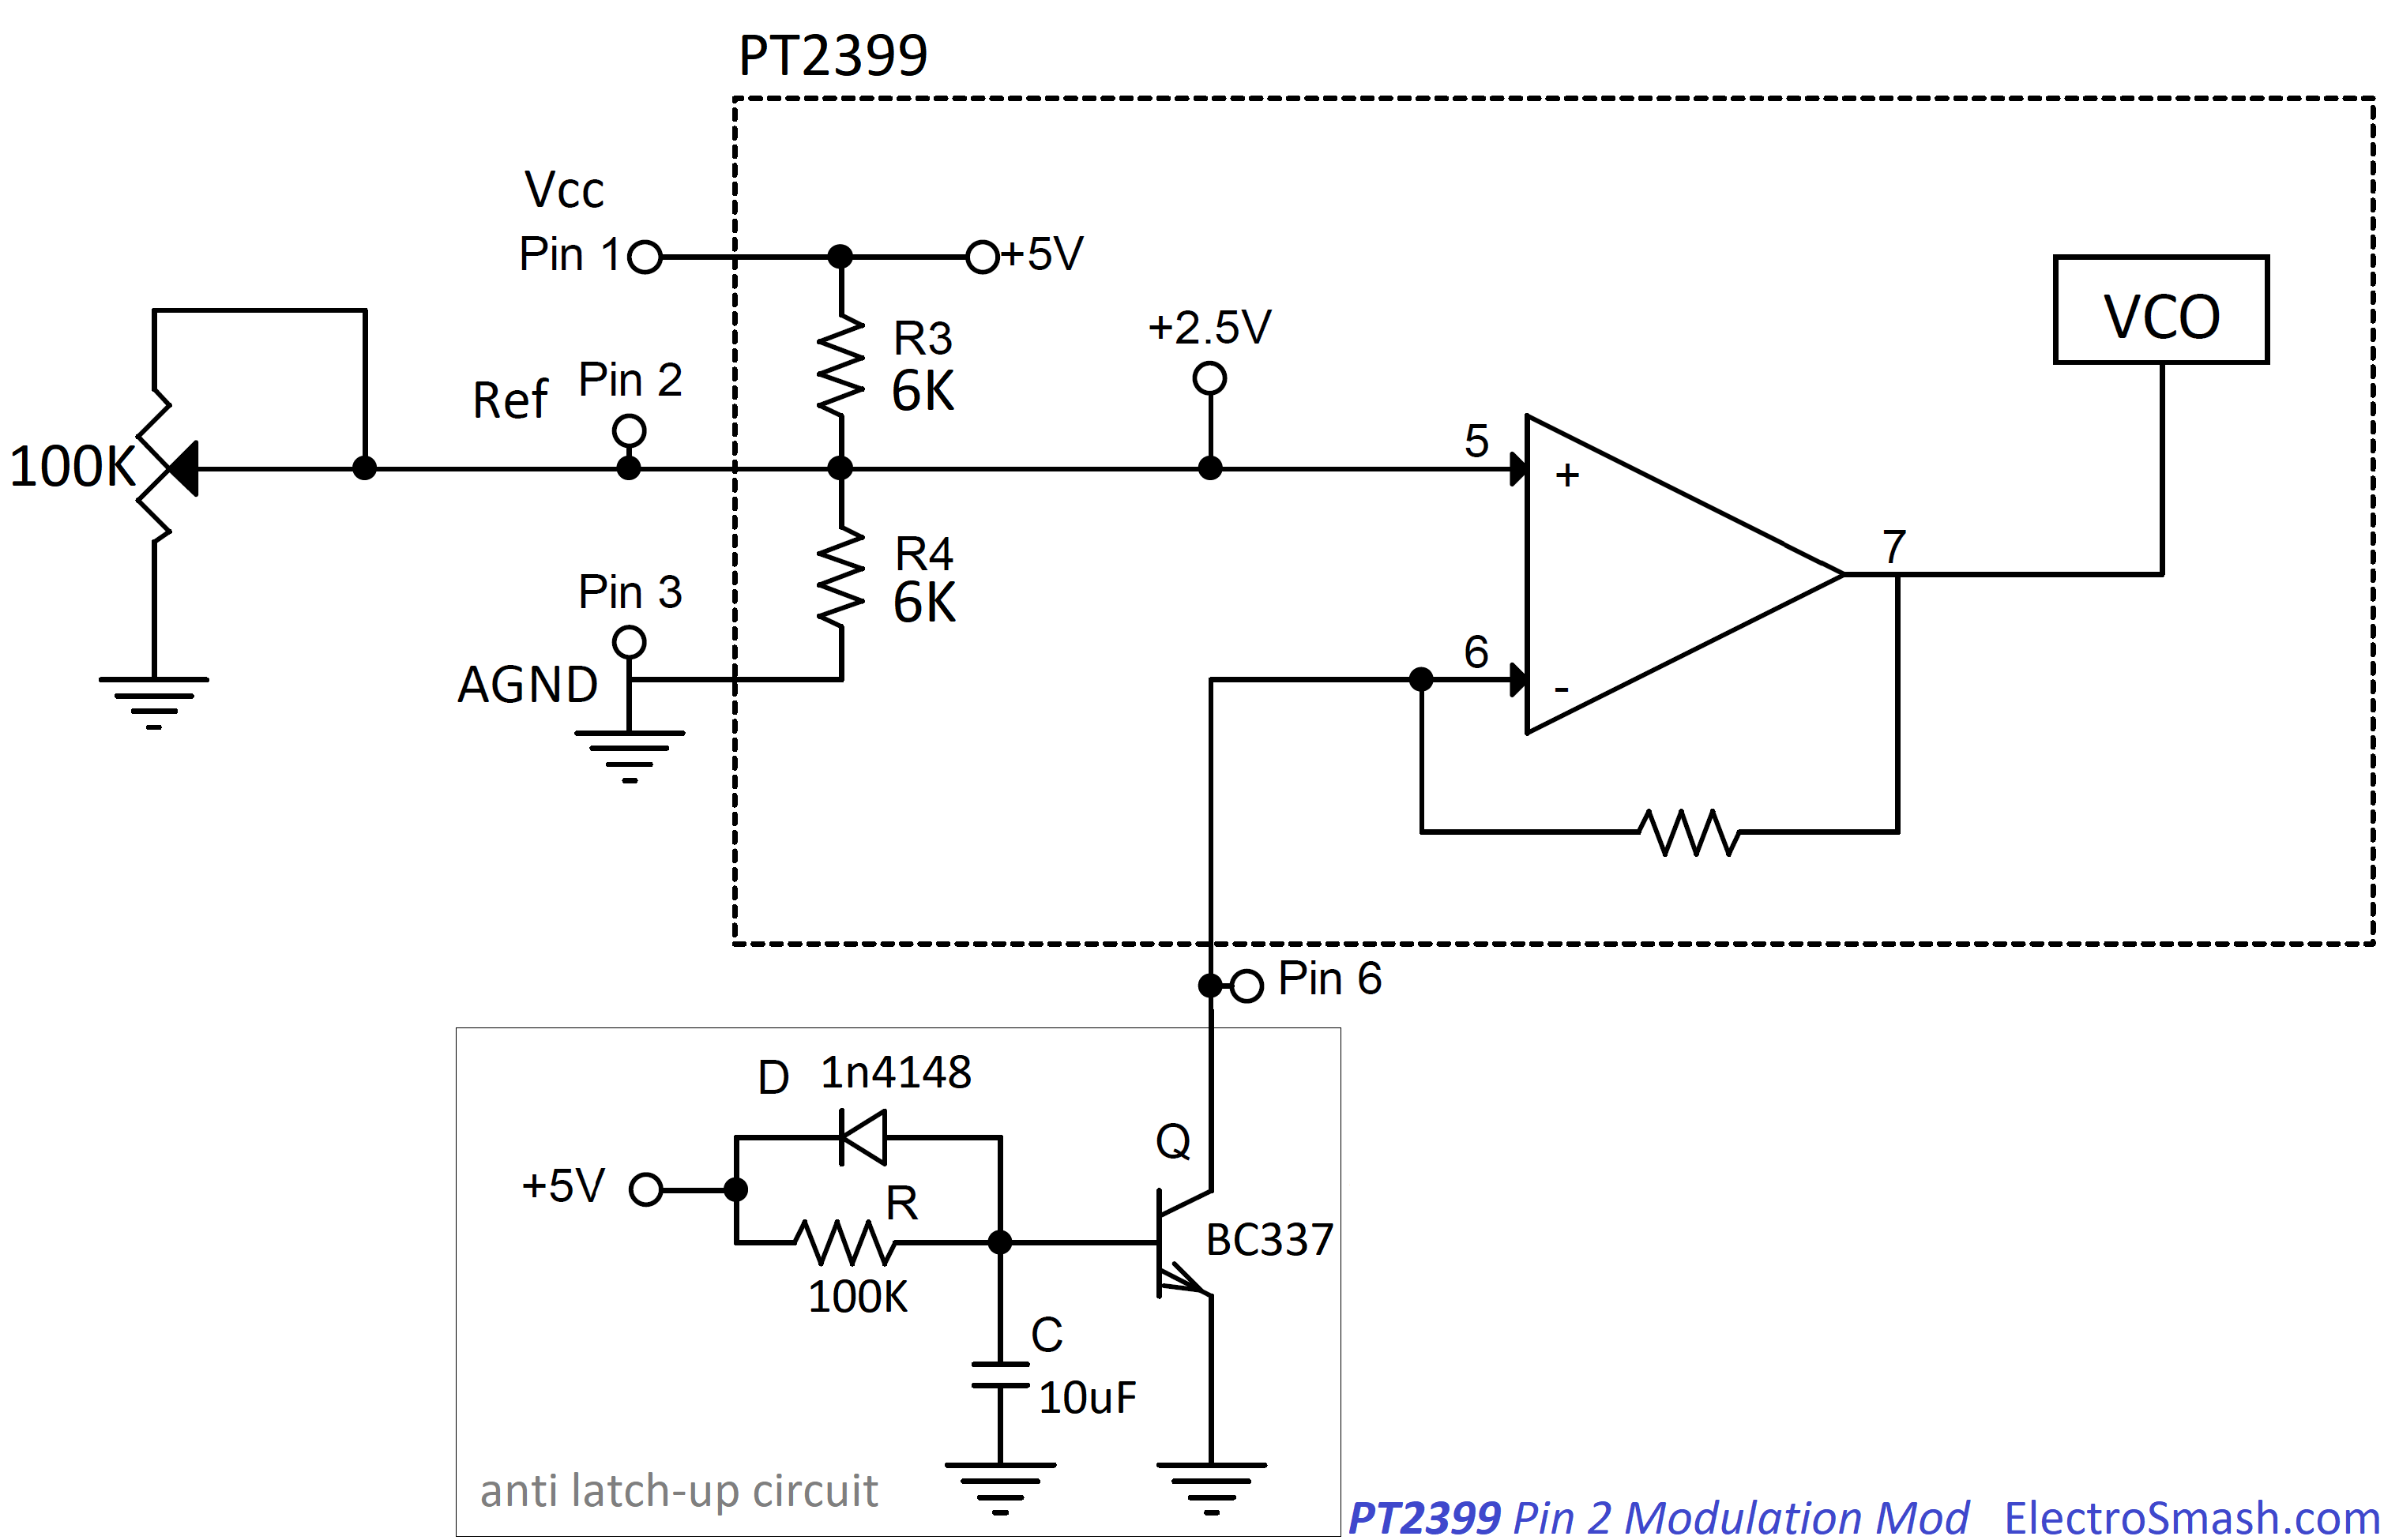 Electrosmash Pt2399 Analysis Lm7805three Terminal Fixed Steady Voltage Integrated Circuit Diagram Pin2 Modulation